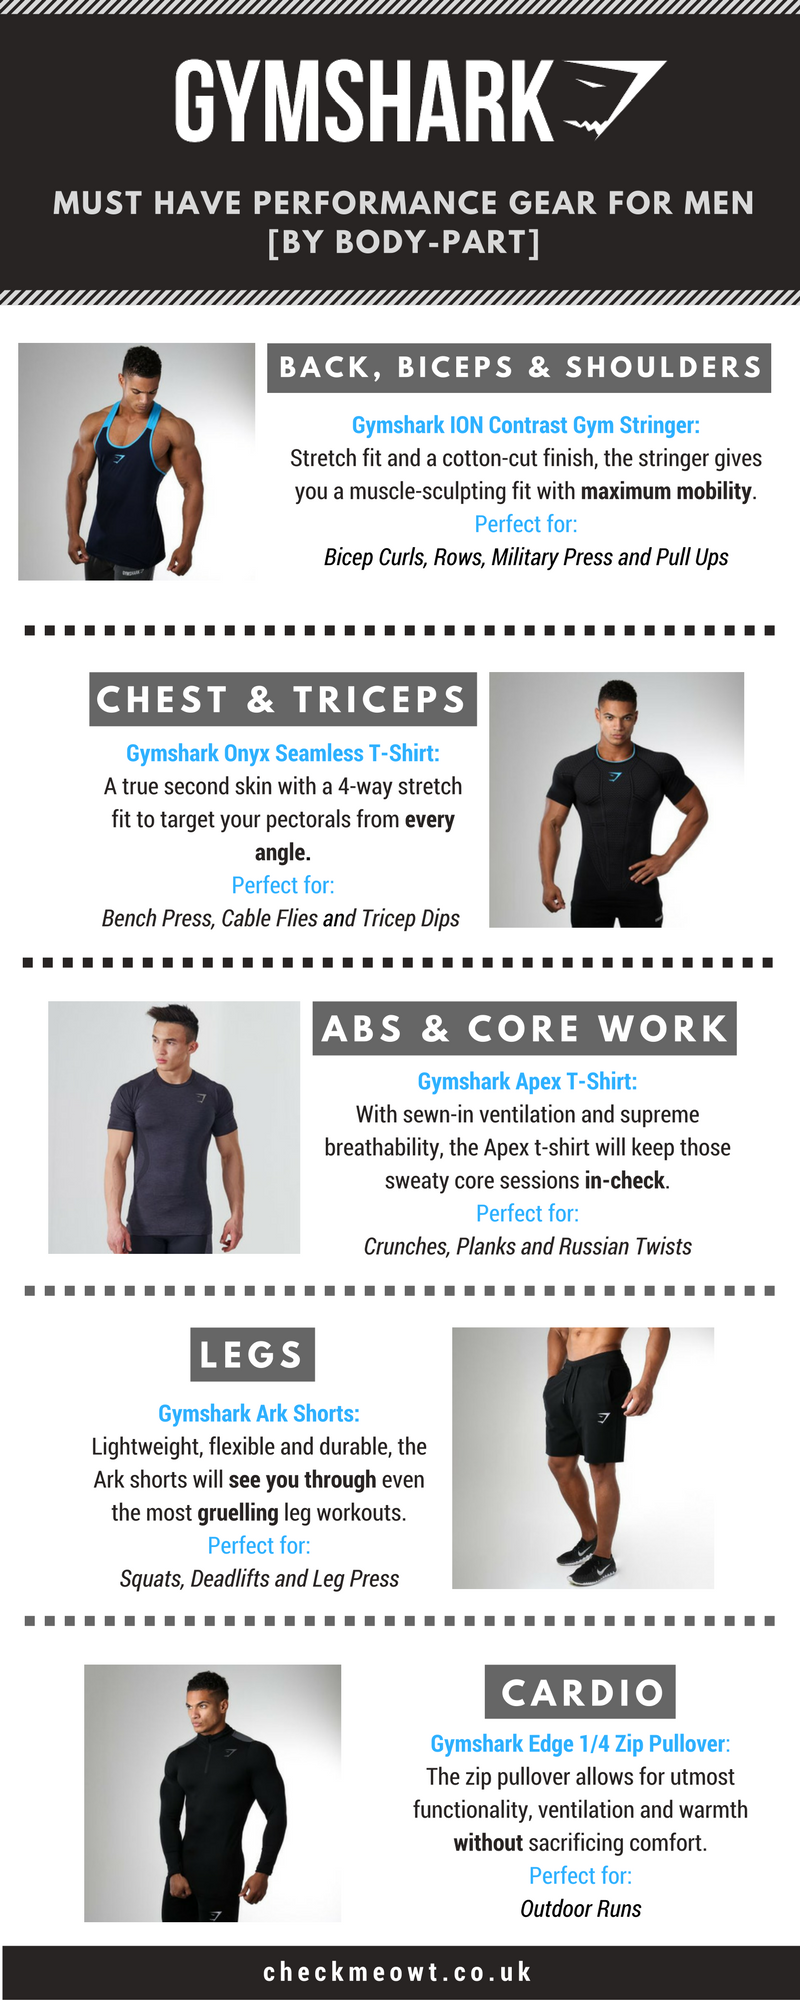 Gymshark Infographic [Men's Must Have Performance Gear]